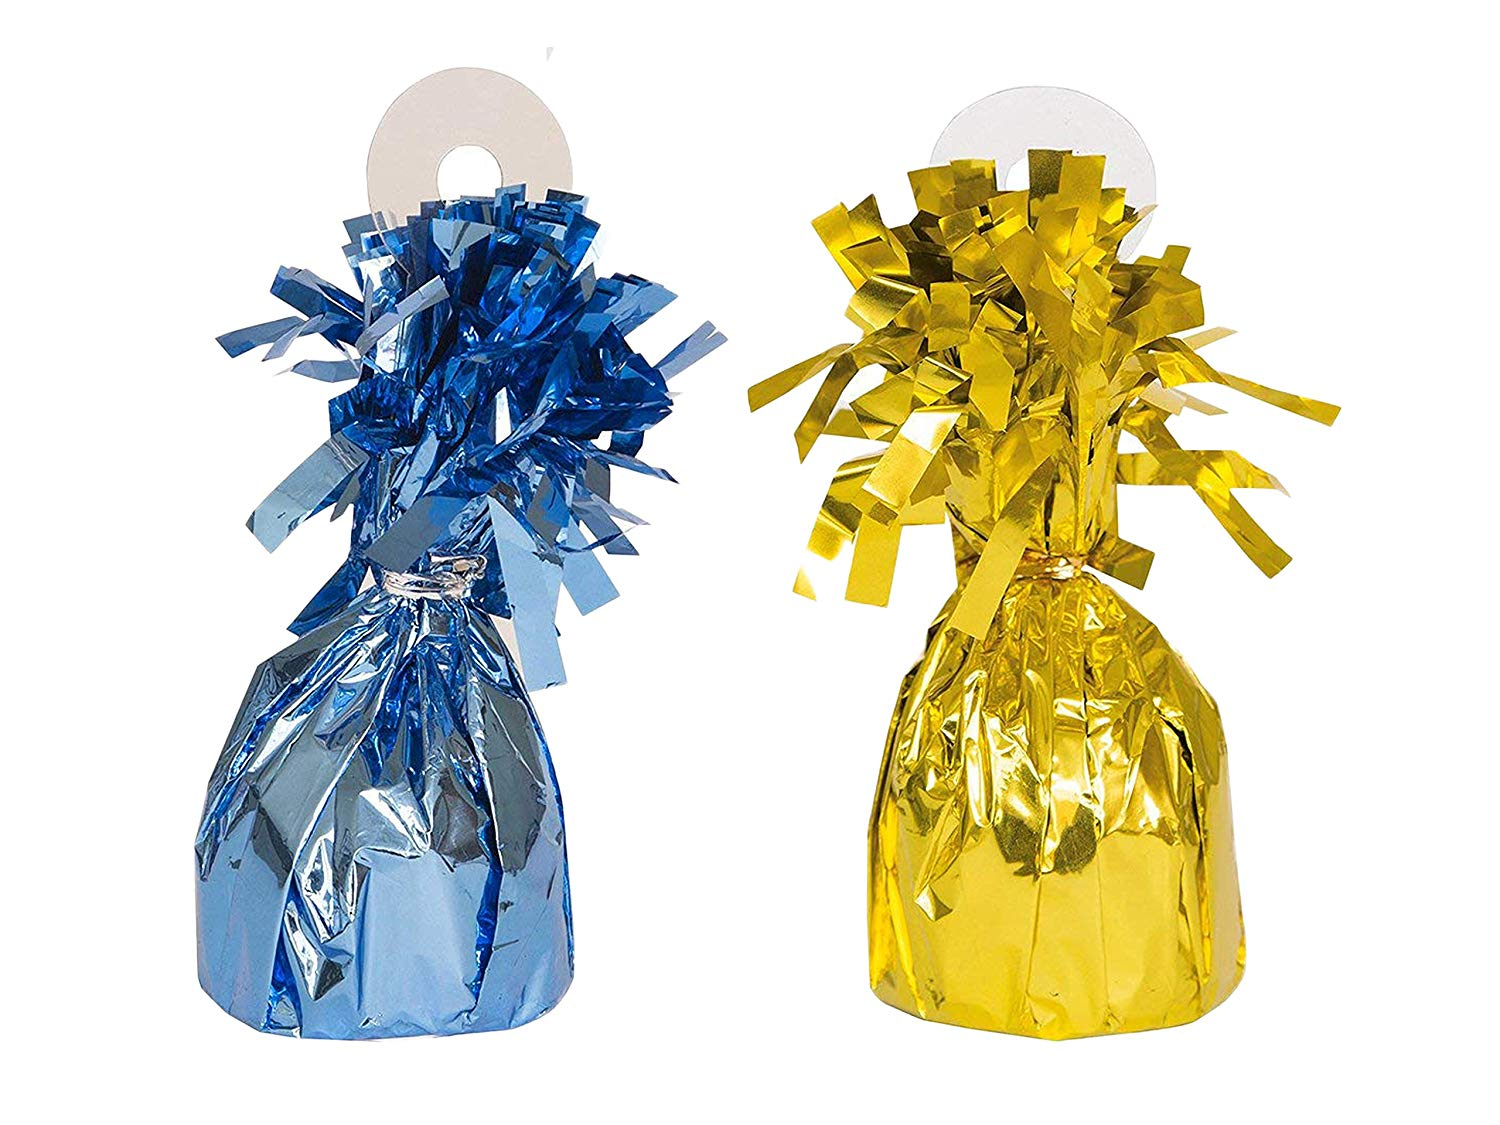 UNIQUE - Foil Light Blue Balloon Weight and Foil Gold Balloon Weight bundled by Maven Gifts